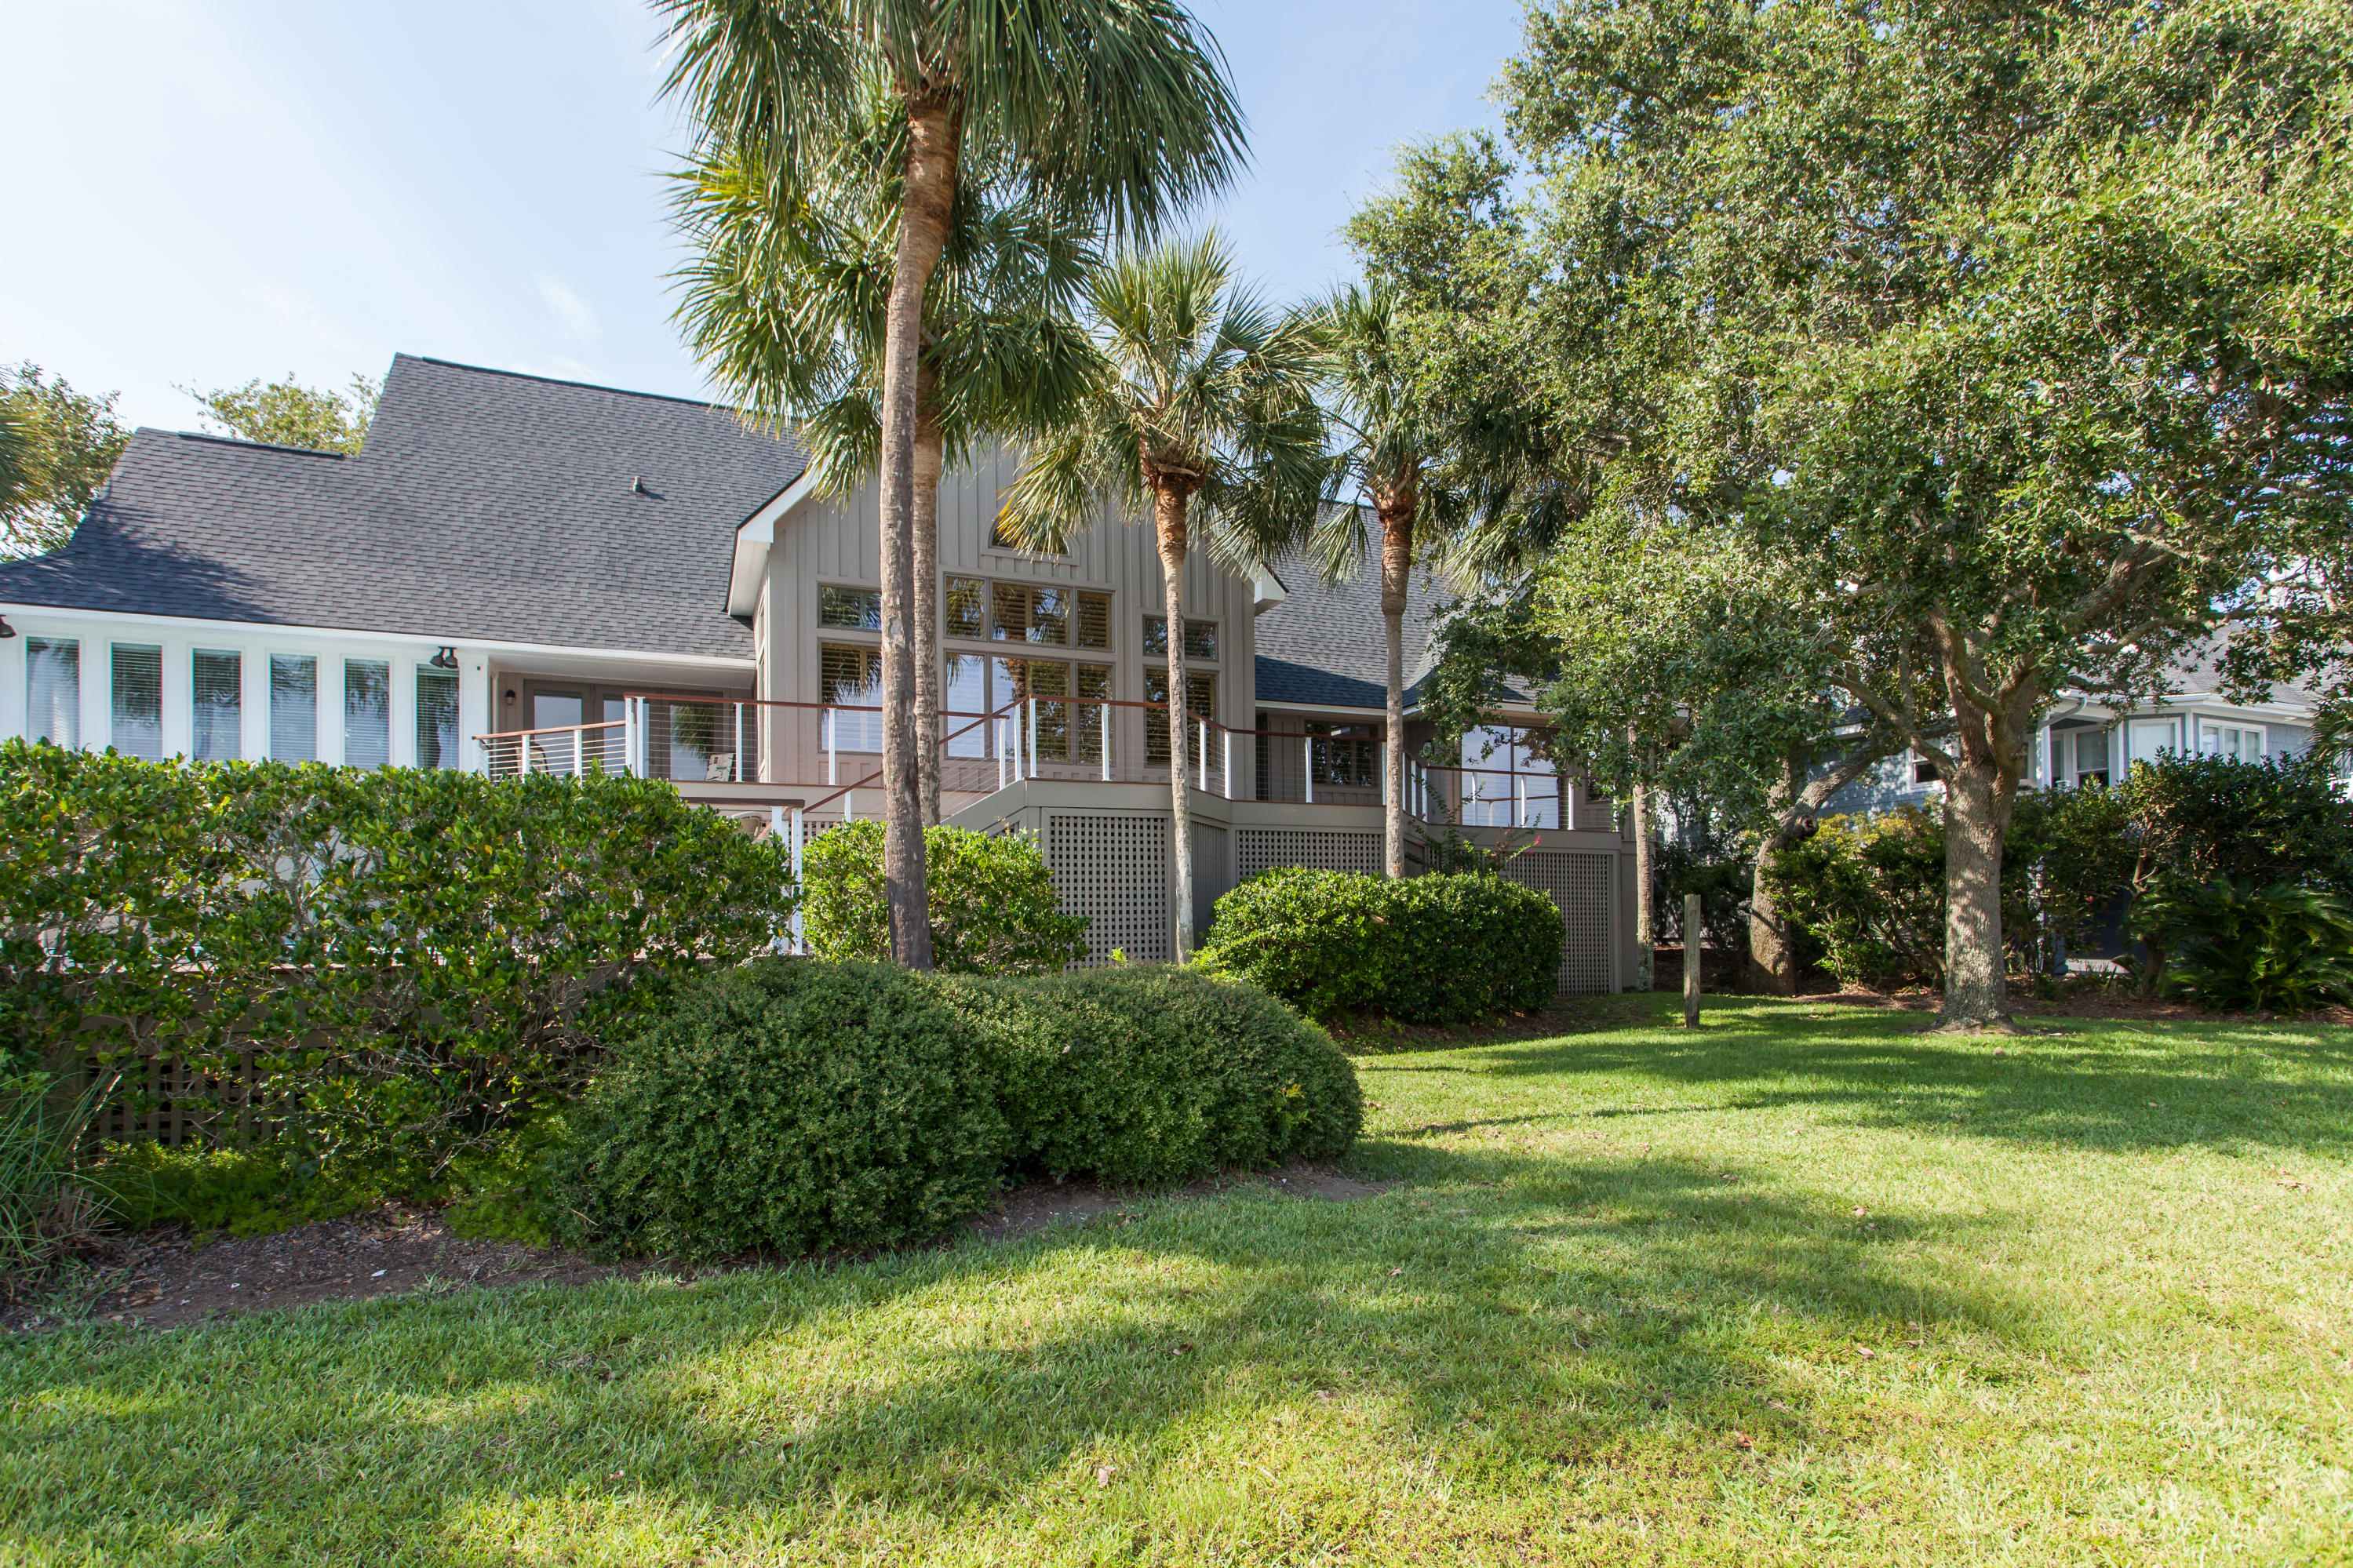 Wild Dunes Homes For Sale - 47 Waterway Island, Isle of Palms, SC - 11